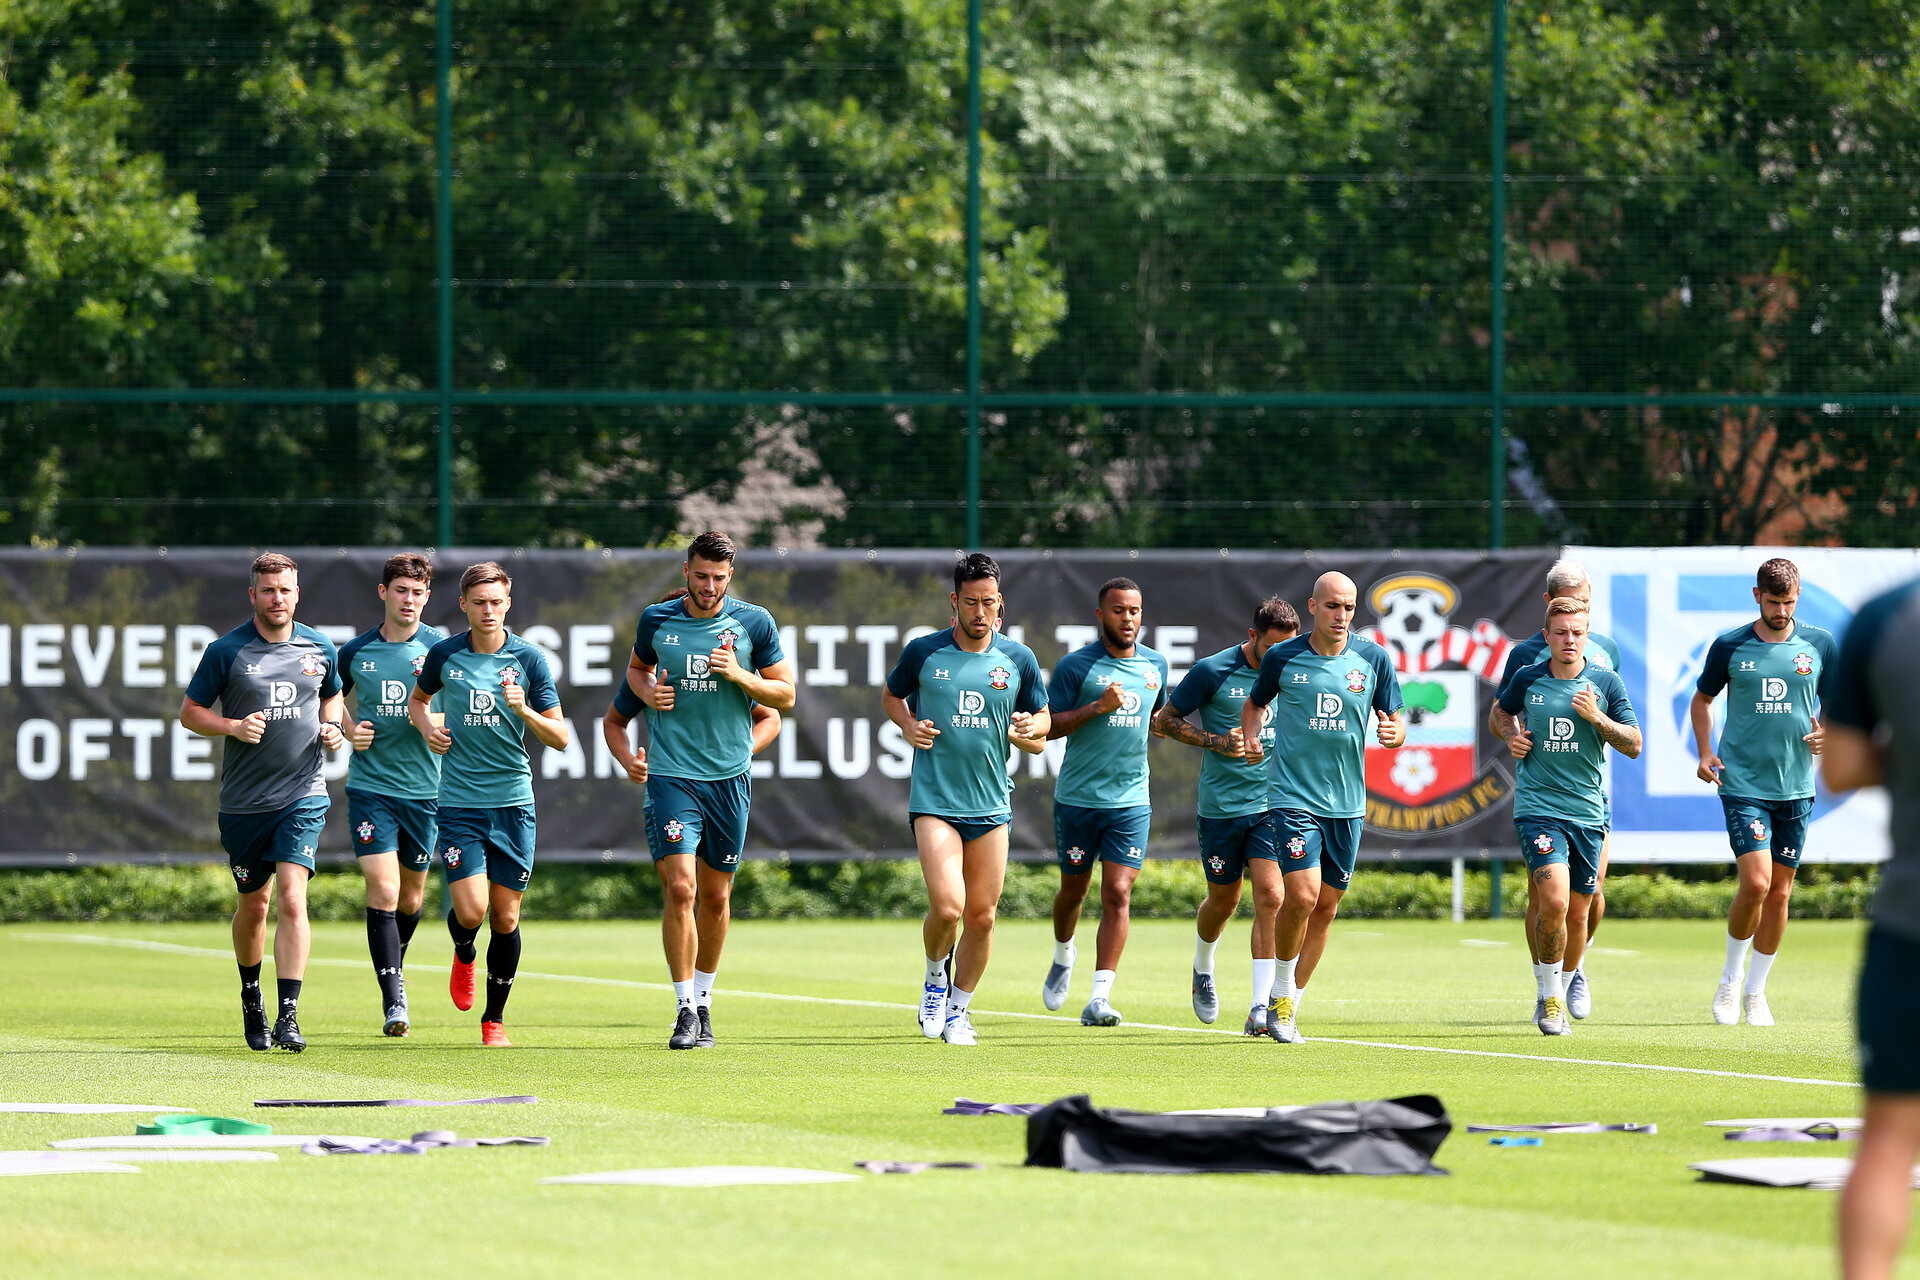 SOUTHAMPTON, ENGLAND - JULY 05: Players warm up during a Southampton FC pre season training session at the Staplewood Campus on July 05, 2019 in Southampton, England. (Photo by Matt Watson/Southampton FC via Getty Images)